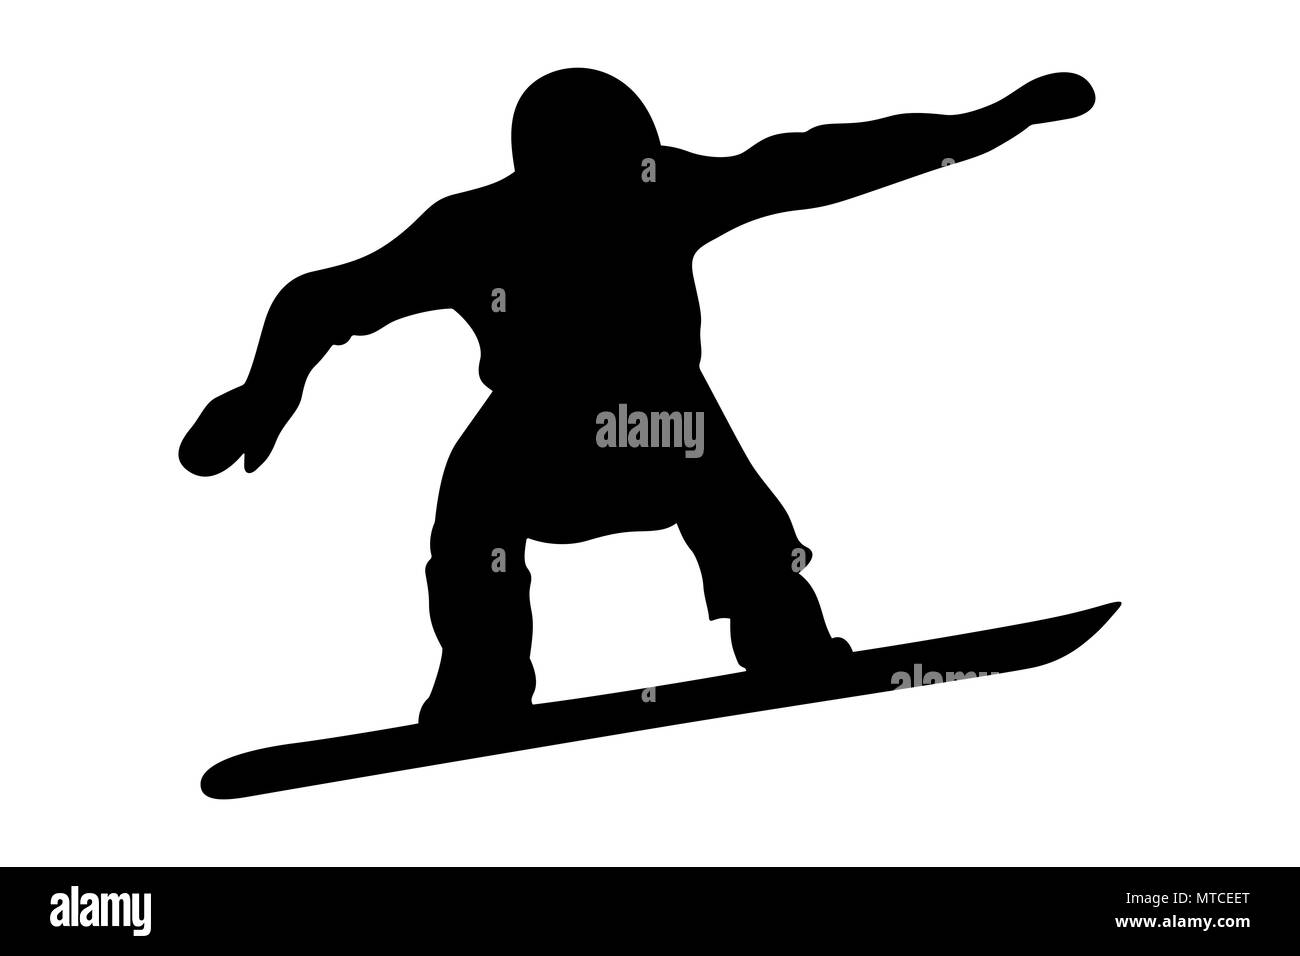 male snowboarder jump and flight black silhouette - Stock Image